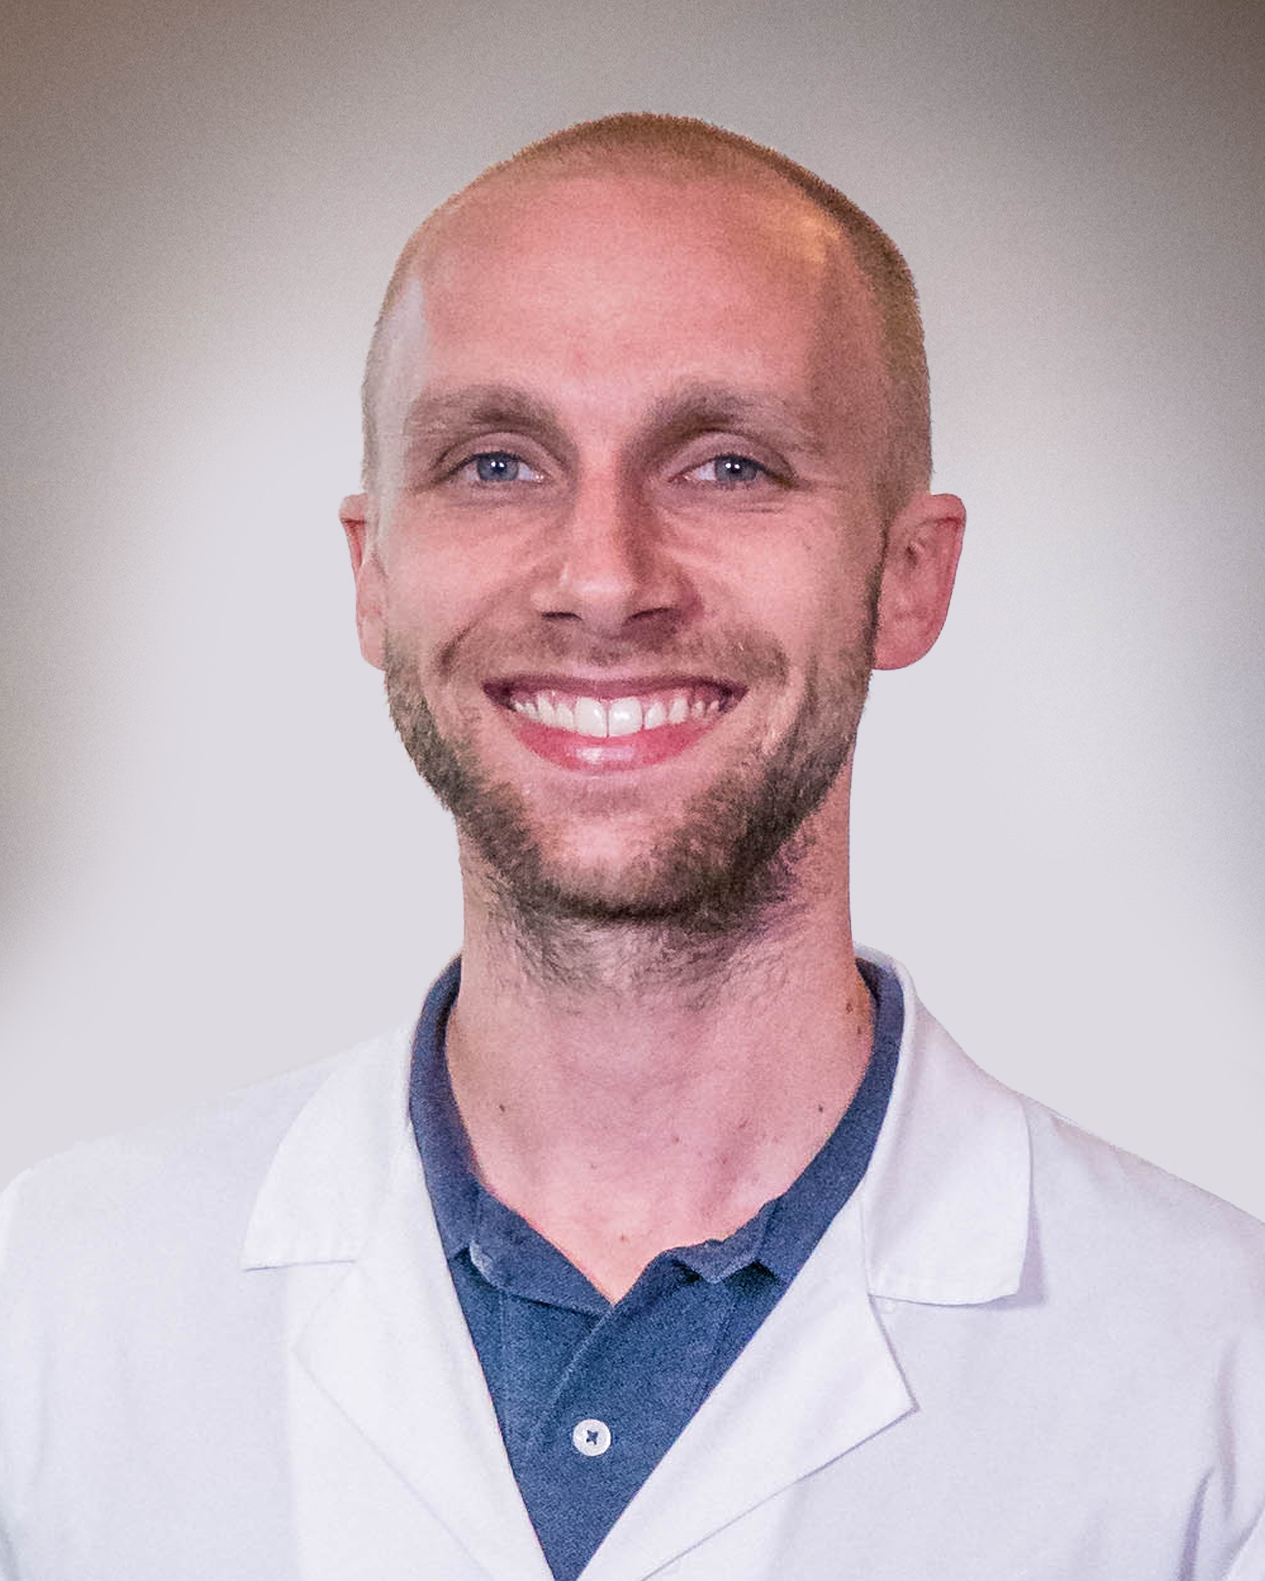 Justin of Migraine and Spine Clinic